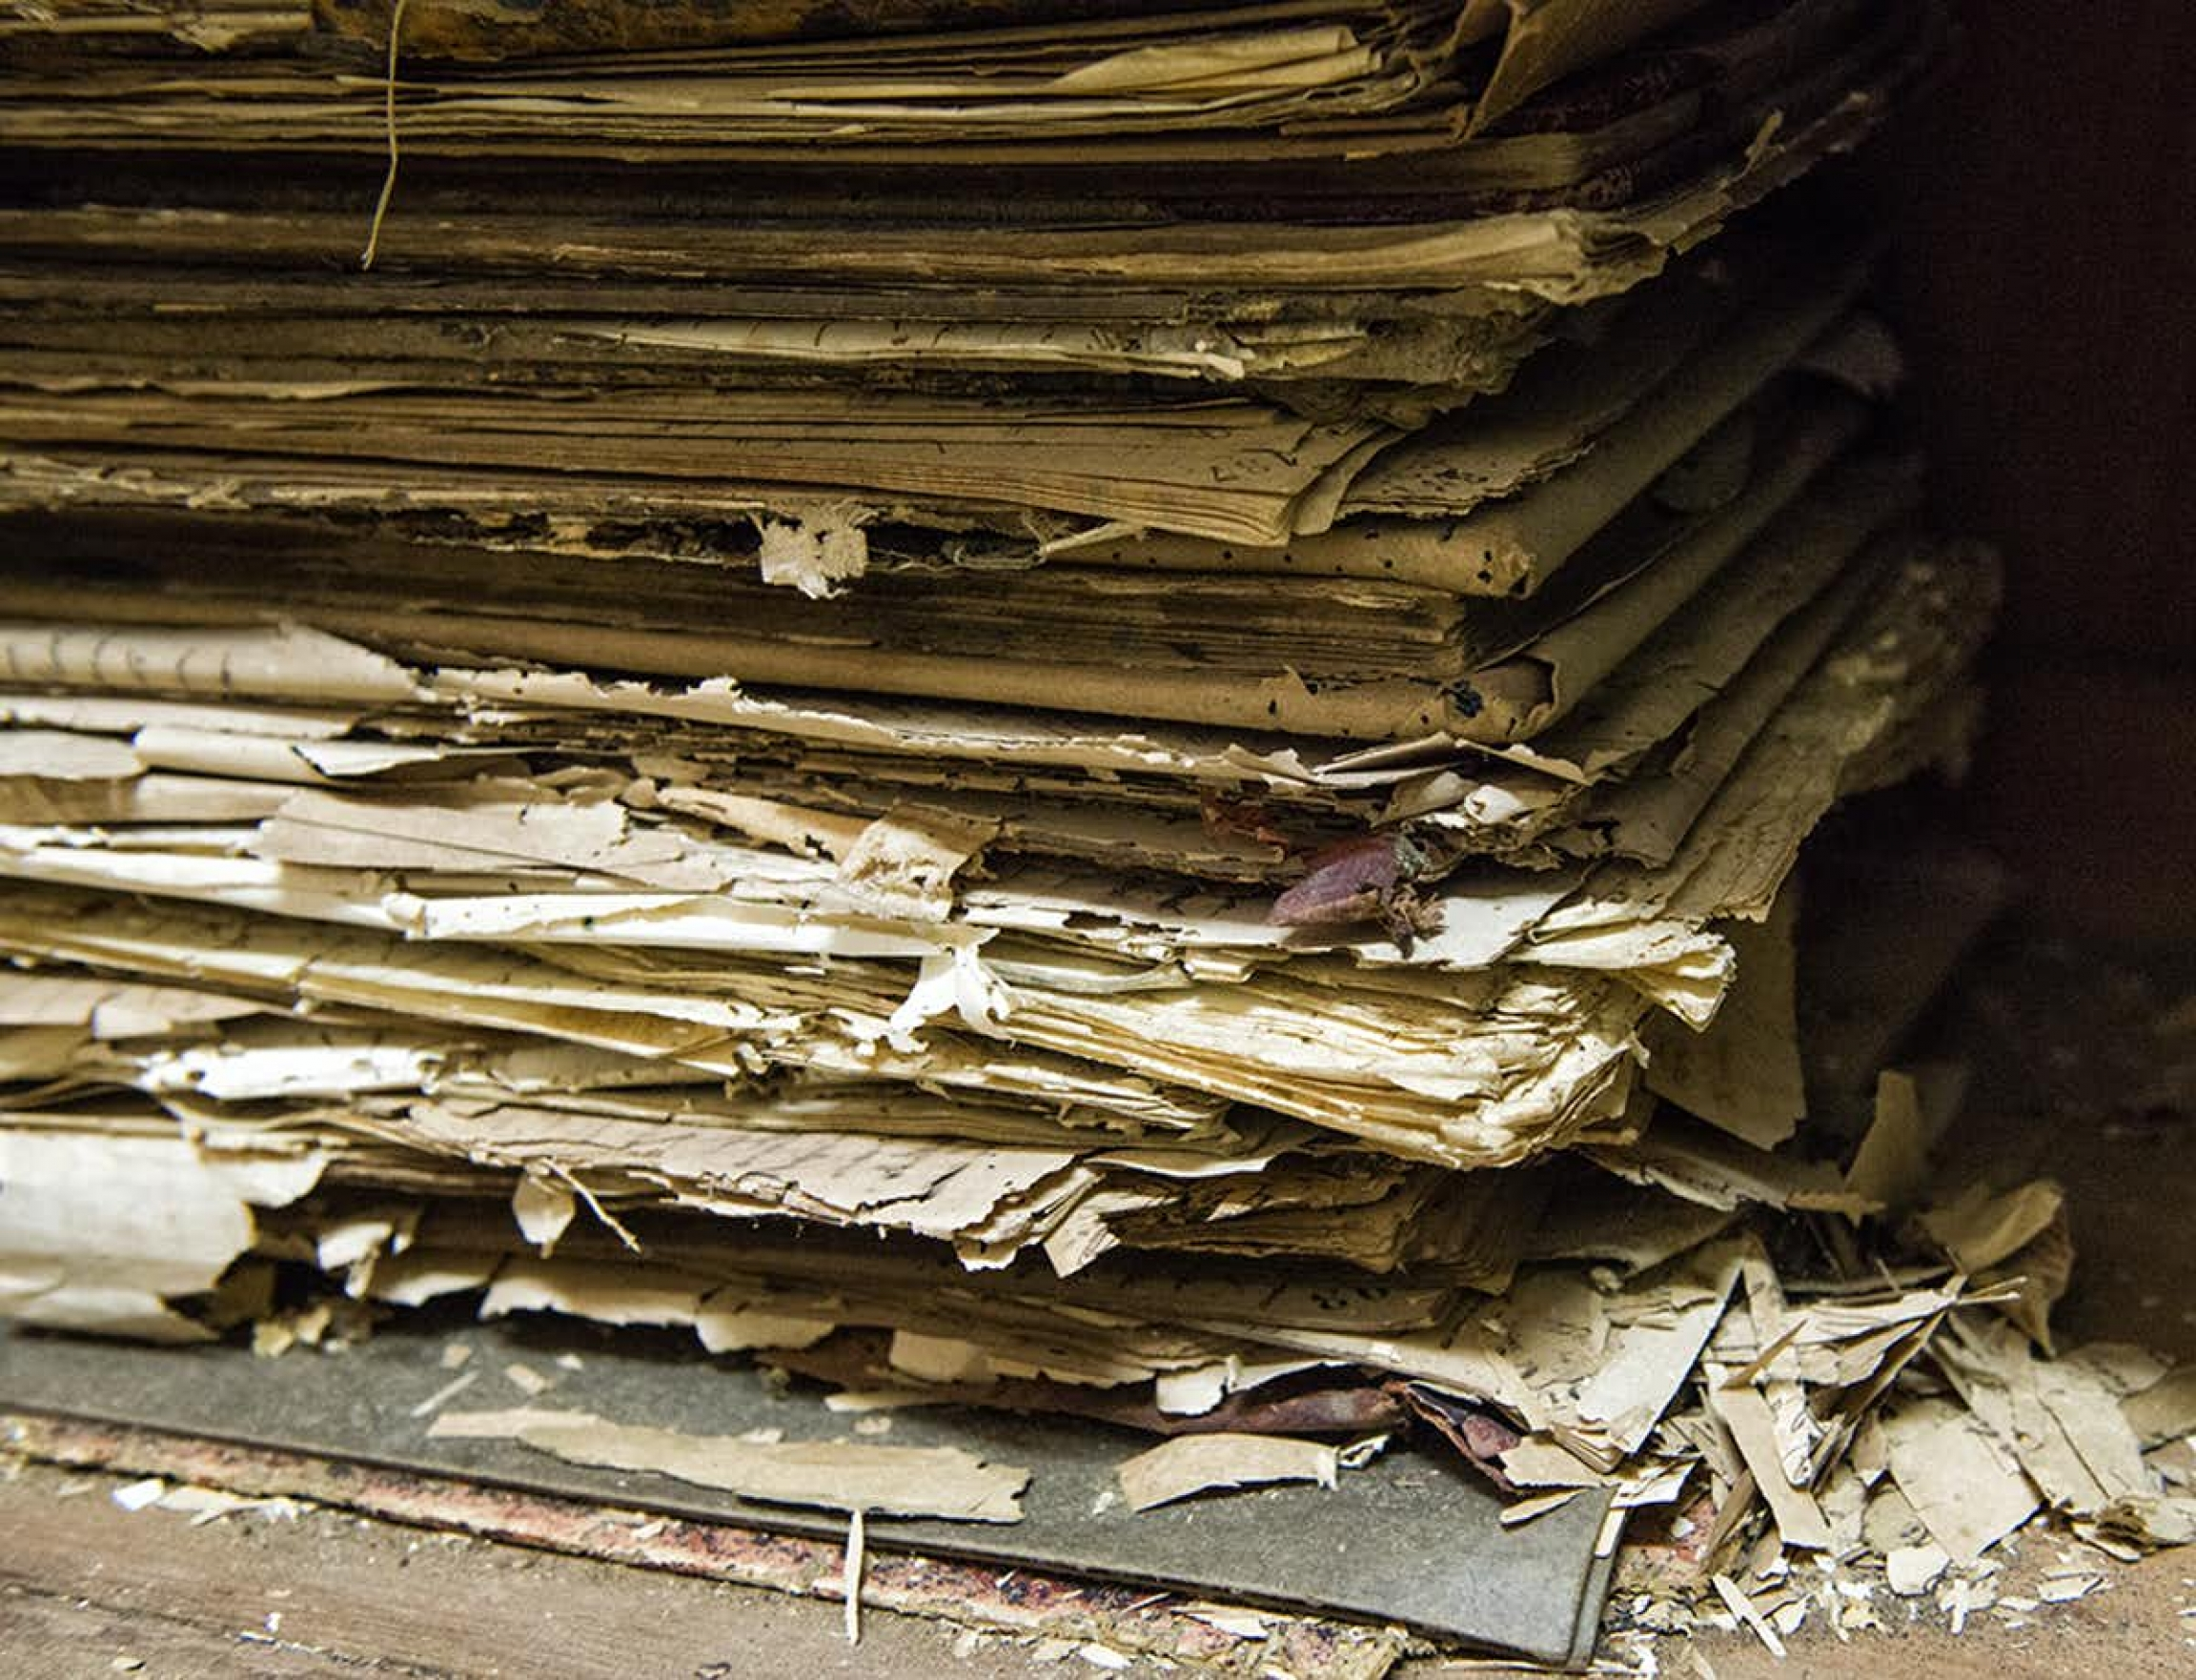 With care, digital preservation can bring new life to crumbling documents.